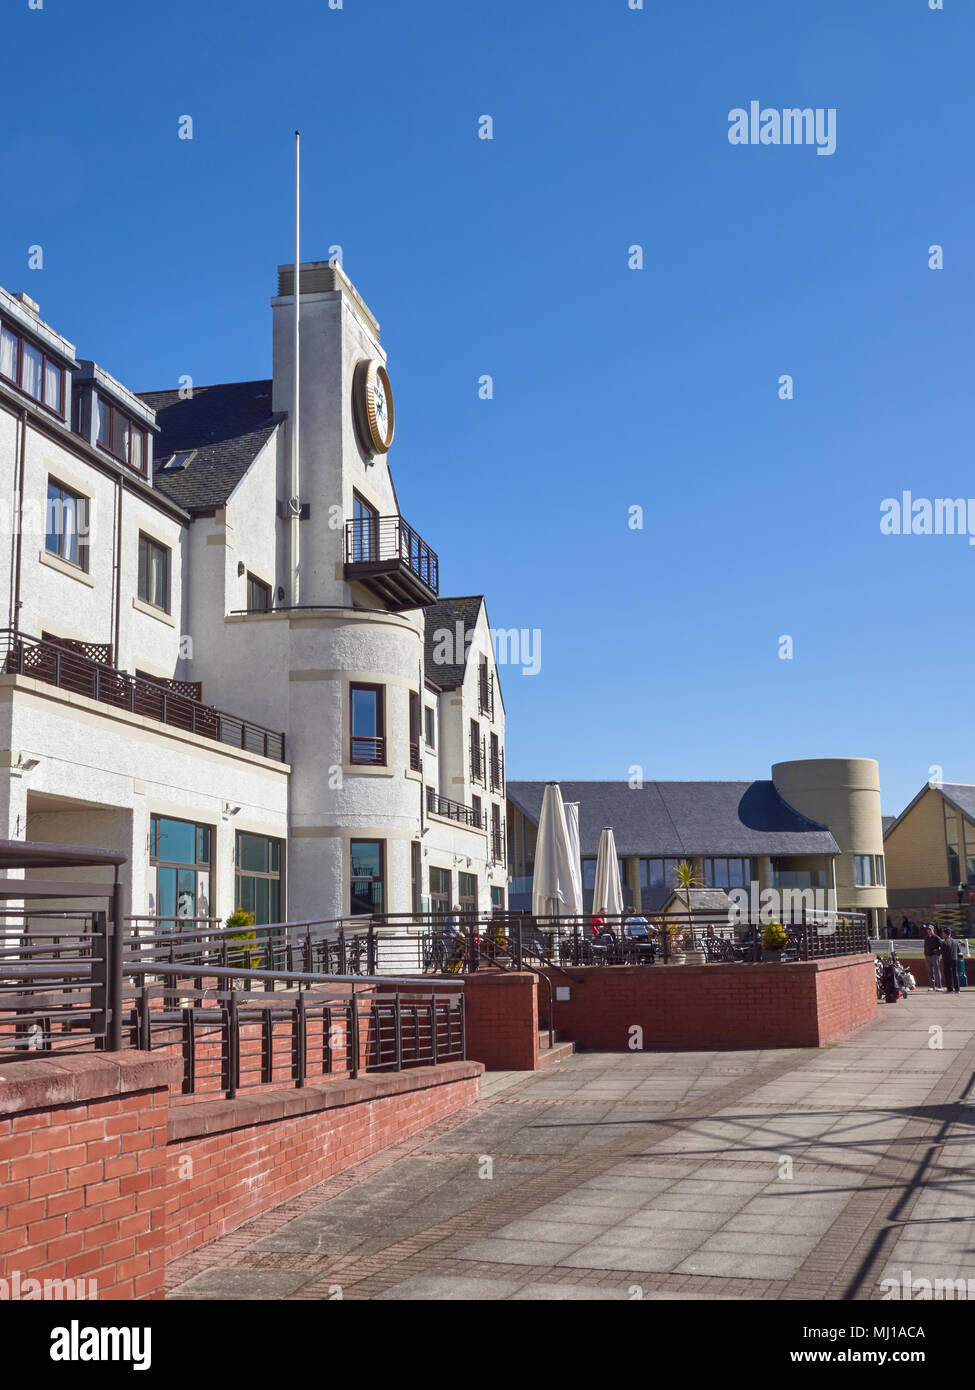 Looking up the terrace at the rear of the Carnoustie Golf Hotel at Carnoustie Golf Links, with Golfers sitting down enjoying a drink. Angus, Scotland. - Stock Image